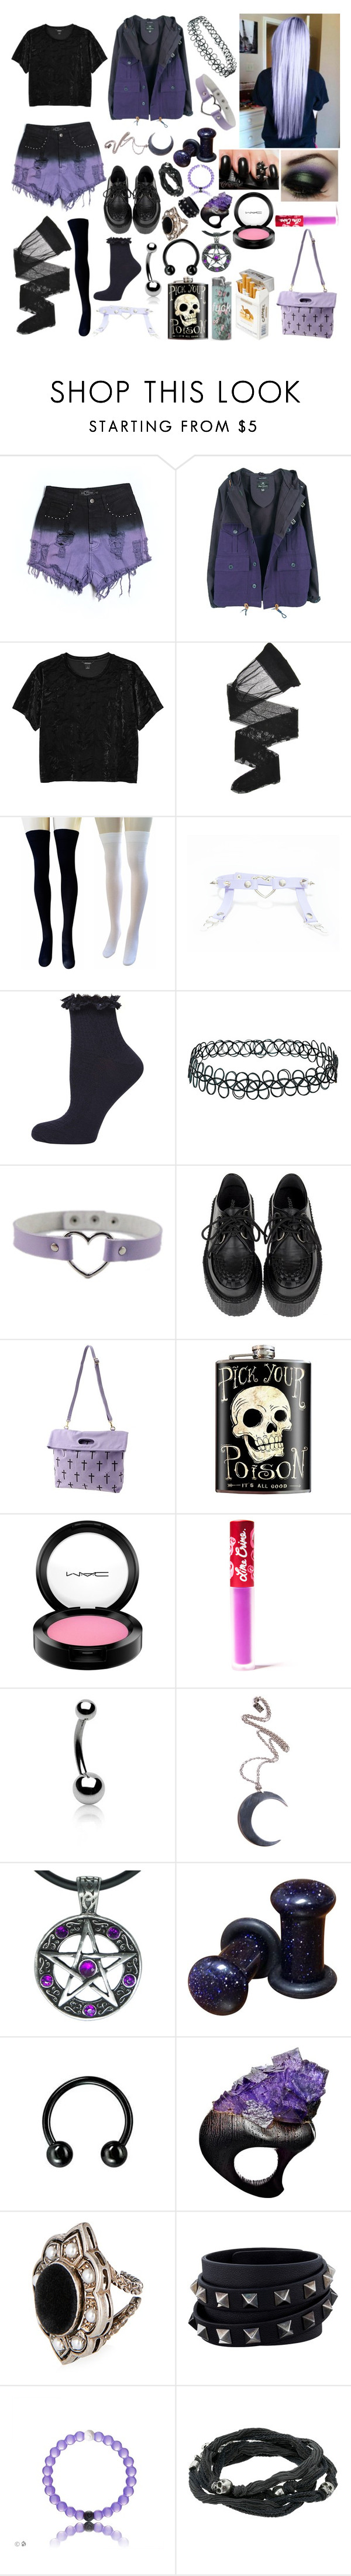 """Untitled #294"" by cupcake125 ❤ liked on Polyvore featuring Evil Twin, Nigel Cabourn, Monki, Wolford, Dorothy Perkins, Topshop, duty free, MAC Cosmetics, Lime Crime and Bling Jewelry"